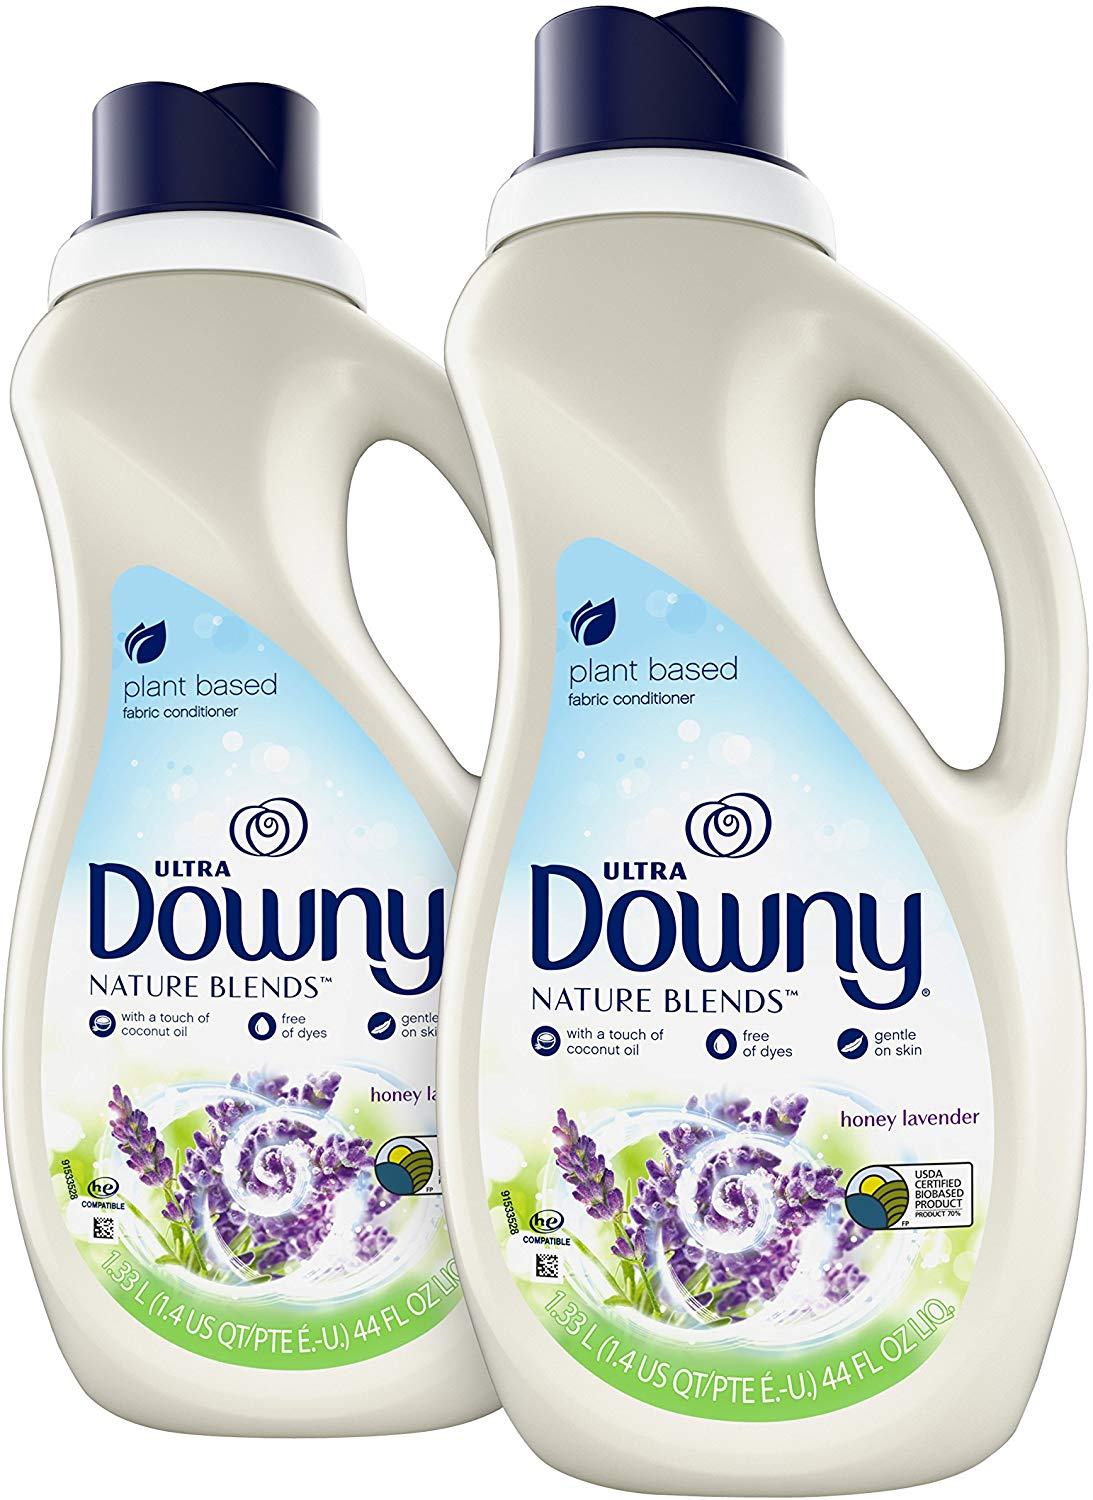 Downy Nature Blends Fabric Conditioner 2-Pack ONLY $7.54 Shipped